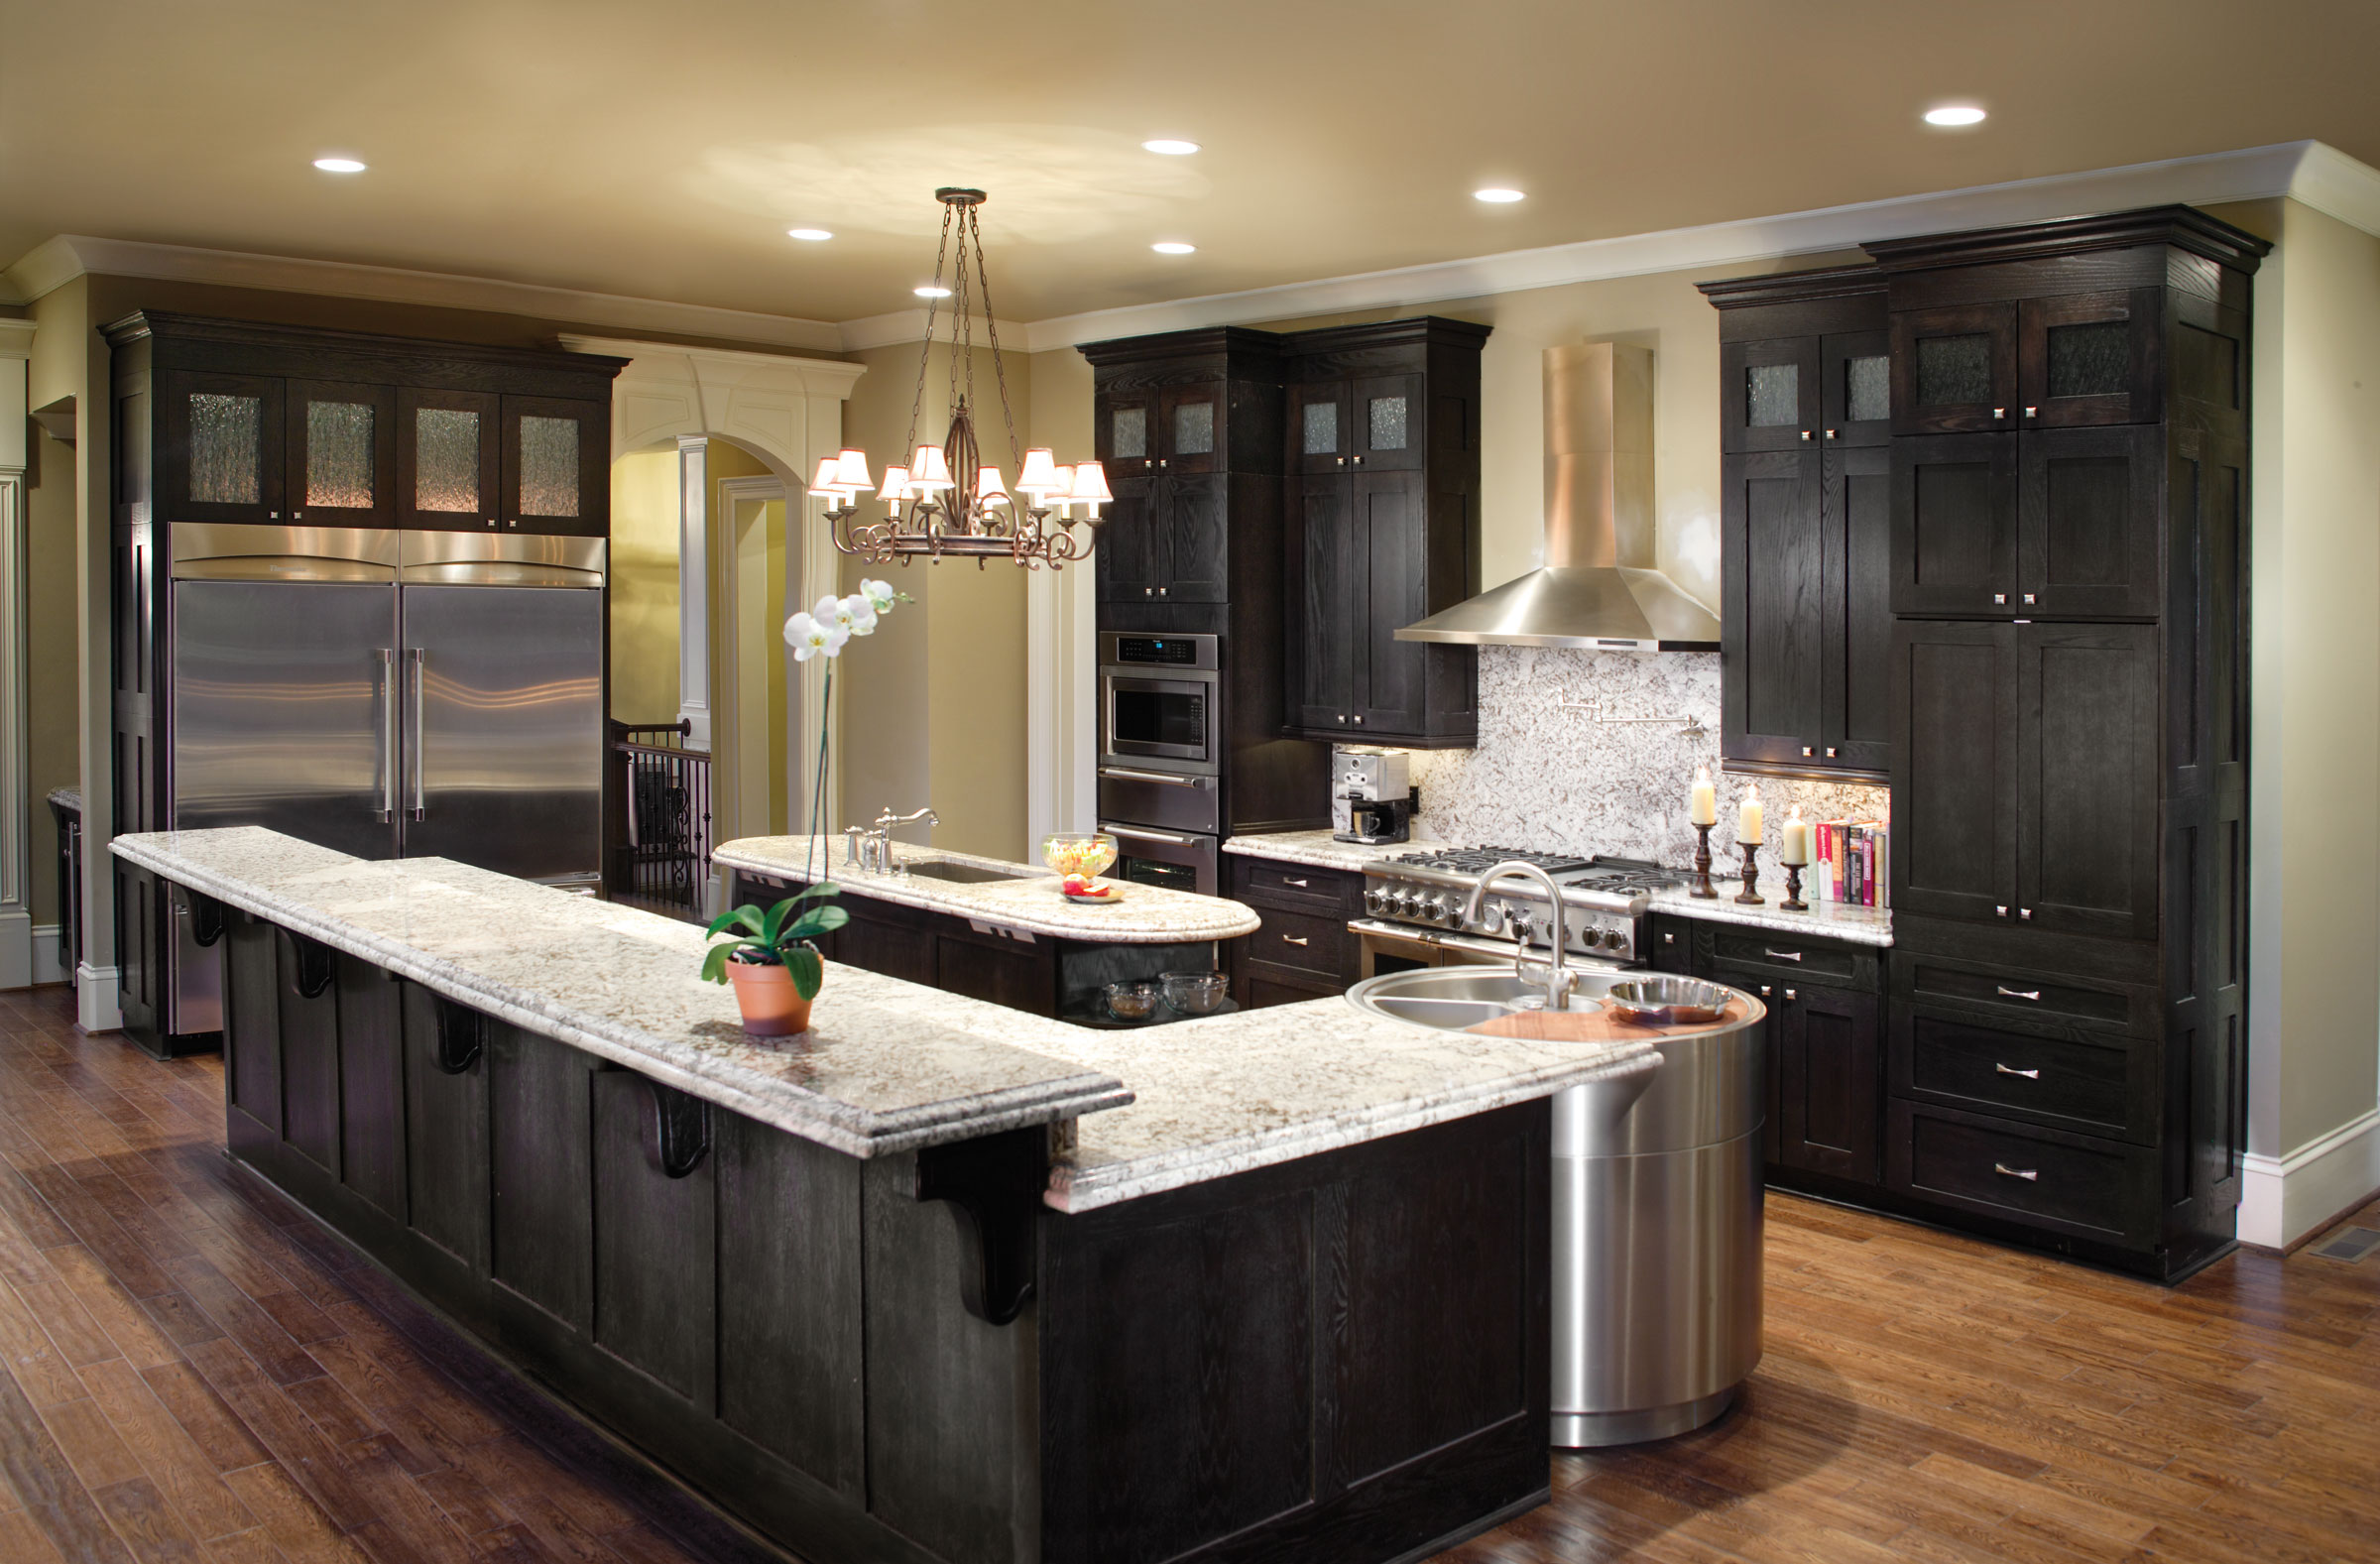 Custom bathroom kitchen cabinets phoenix cabinets by for Kitchen designs cabinets